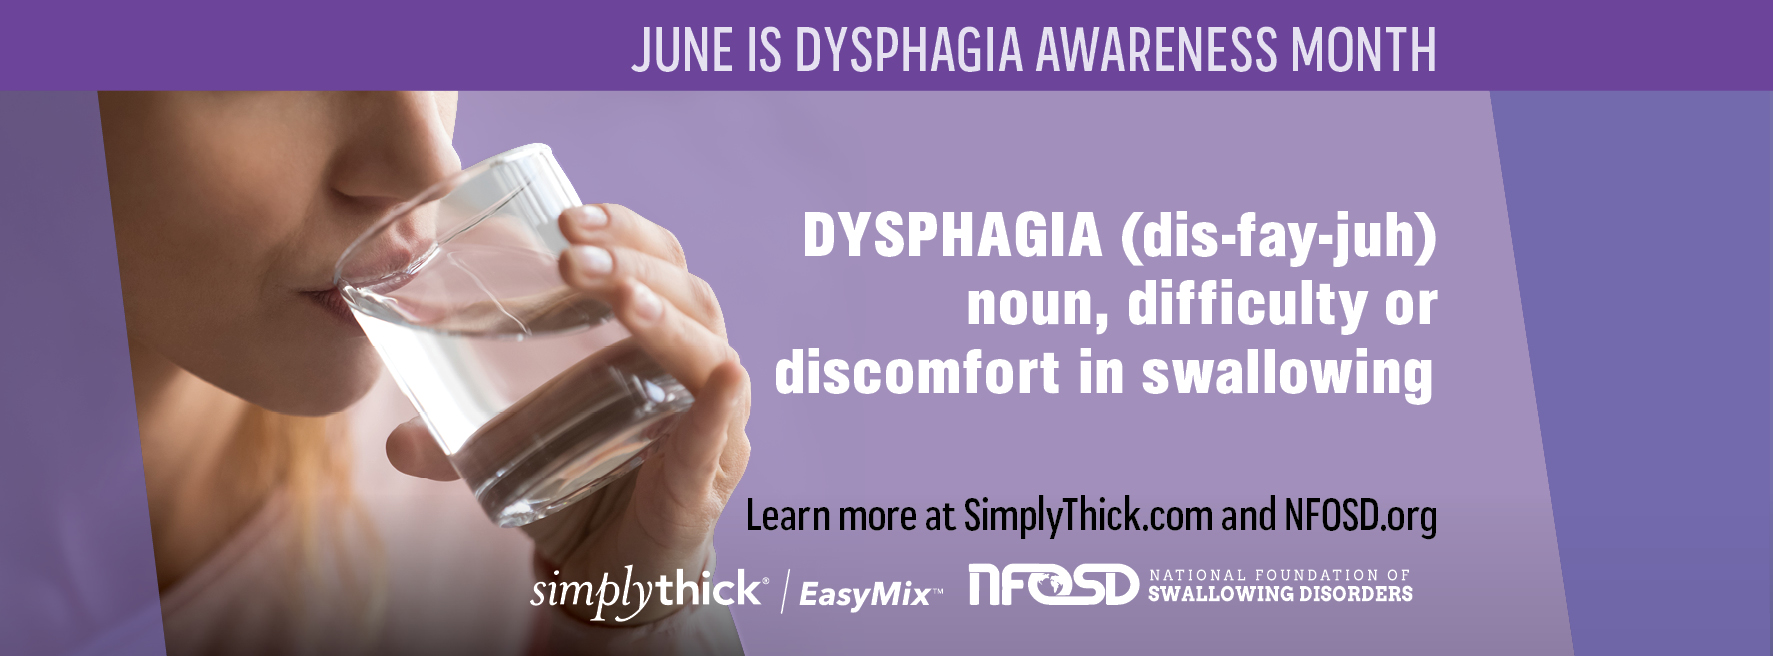 dysphagia awareness month Facebook cover